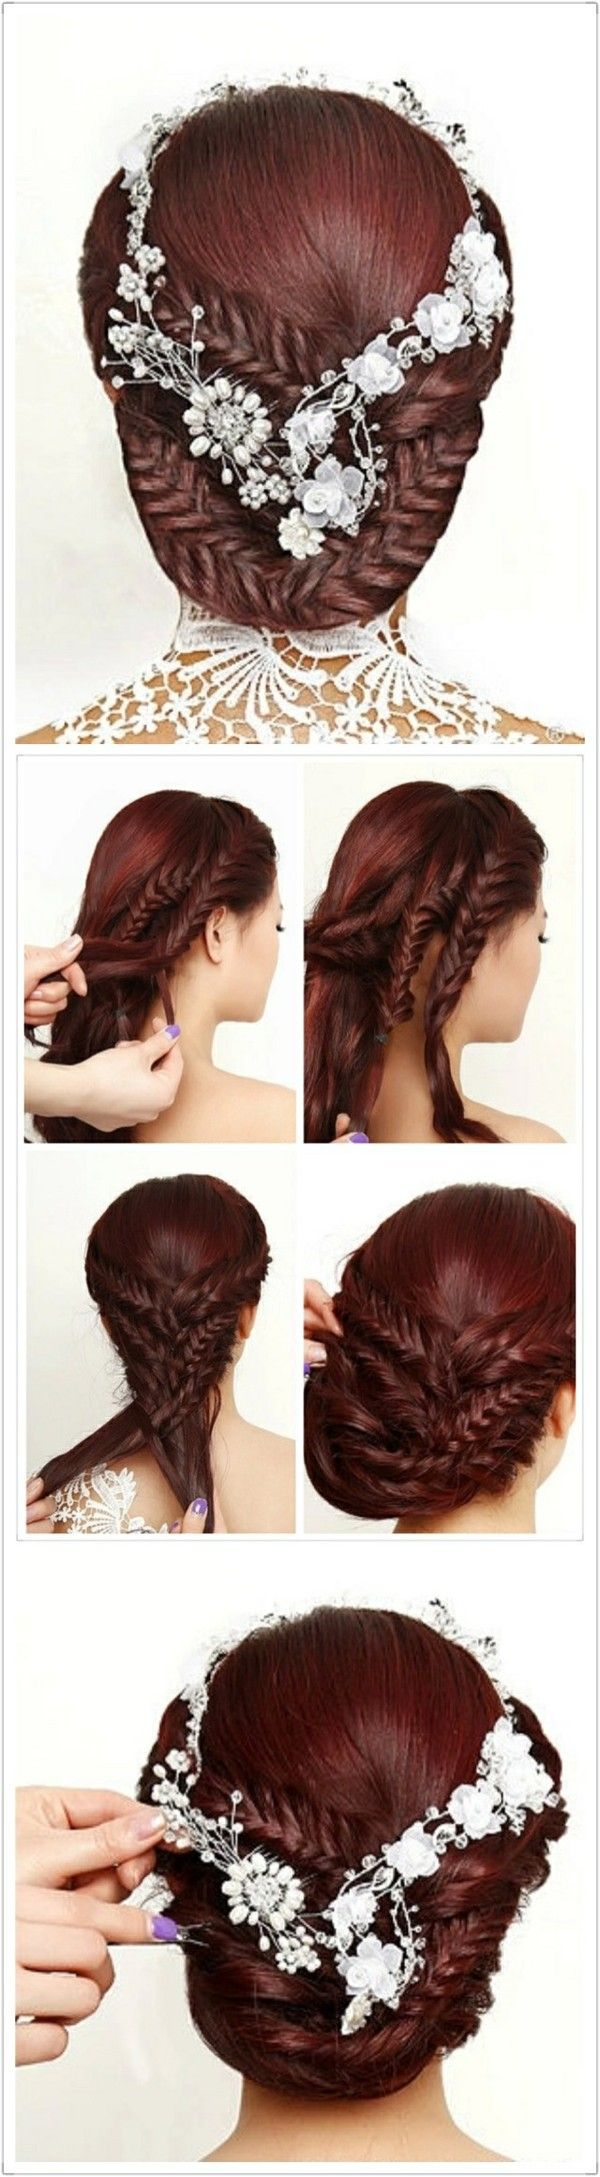 fishtail braided updo hairstyle | This looks so Victorian! Can you image it with an 1860s ballgown? Perfection!